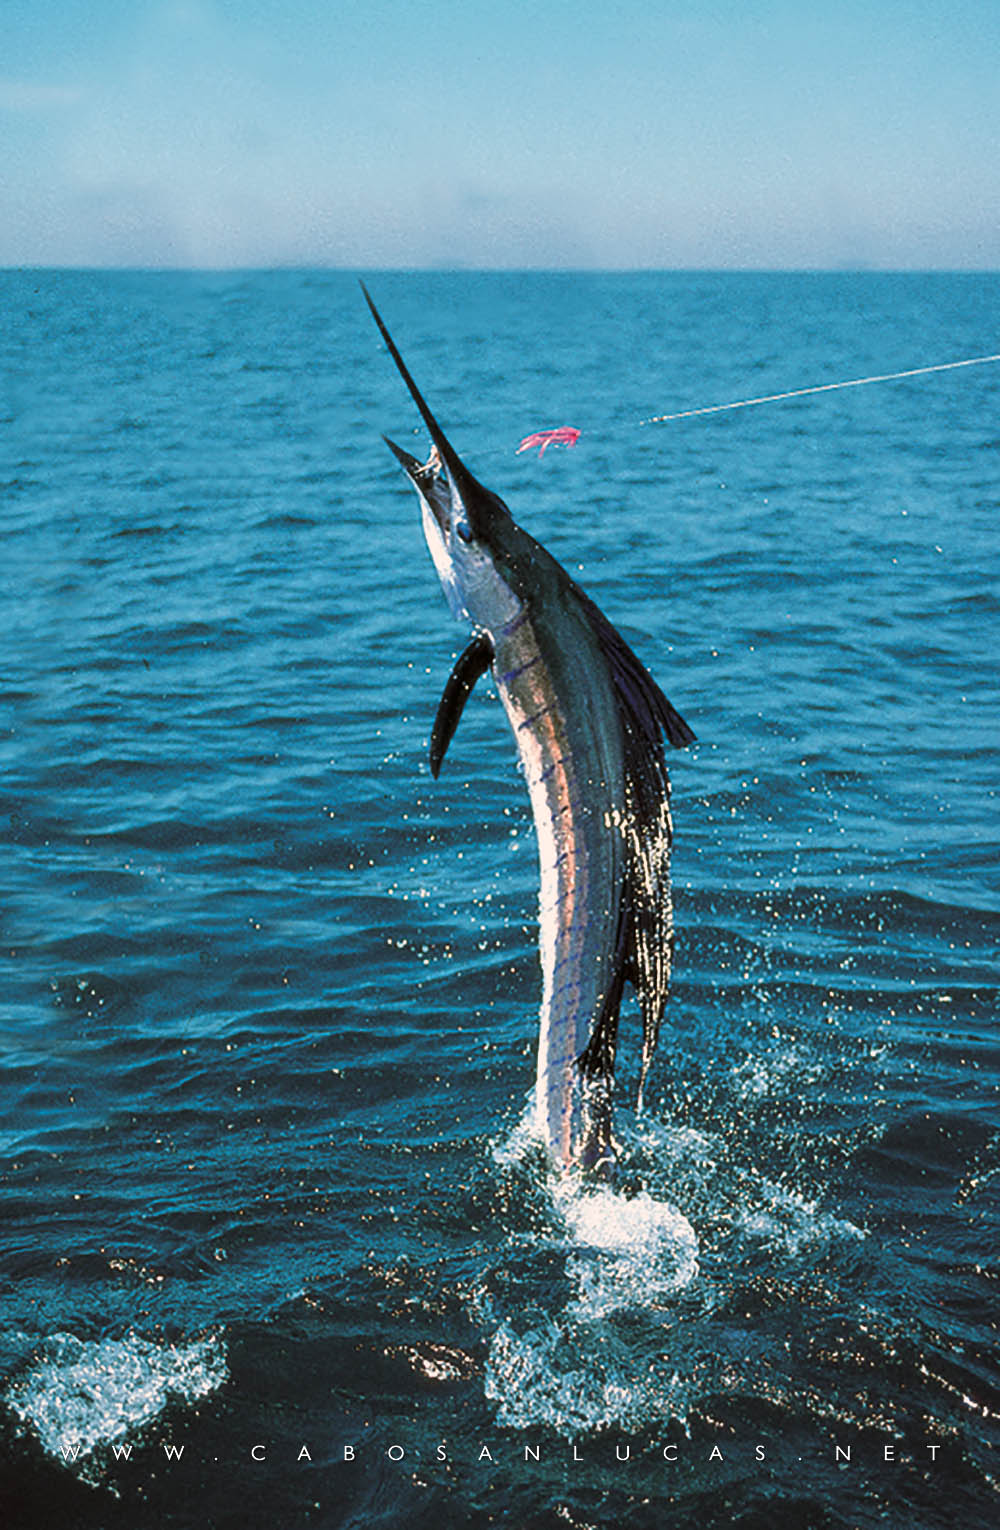 Cabo san lucas los cabos sport fishing for Cabo san lucas fishing season